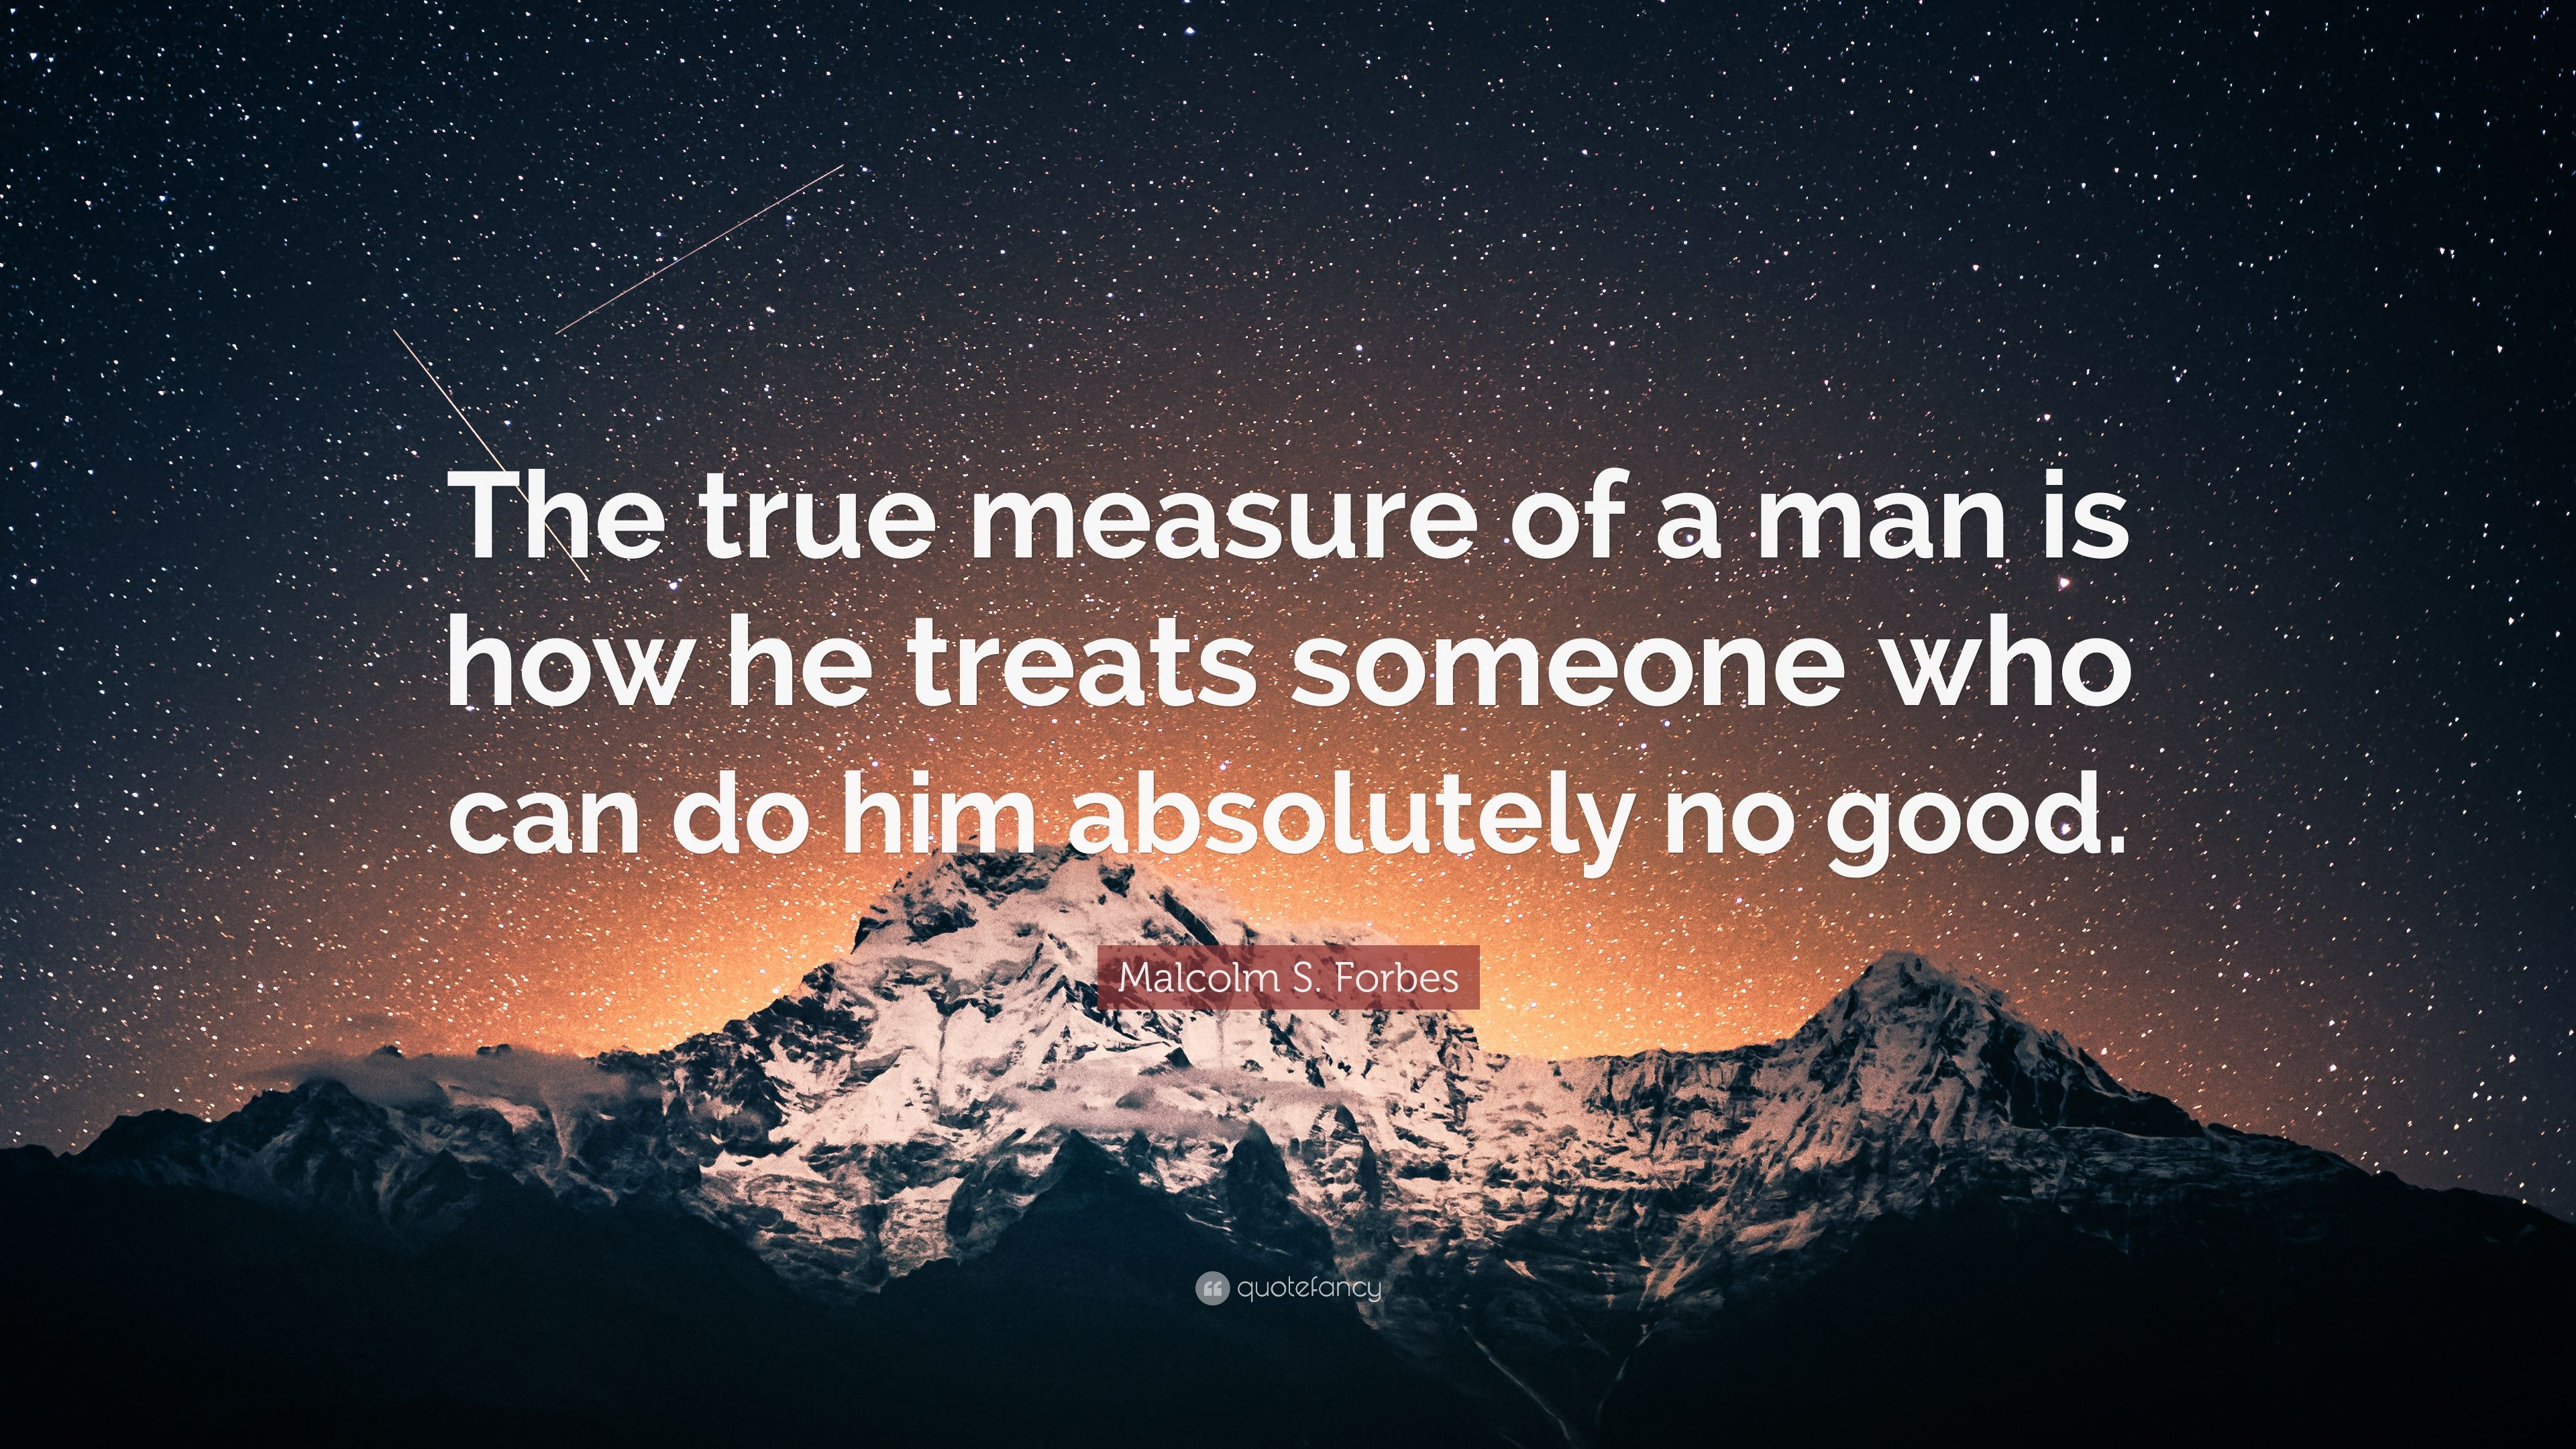 Malcolm S Forbes Quote The True Measure Of A Man Is How He Treats